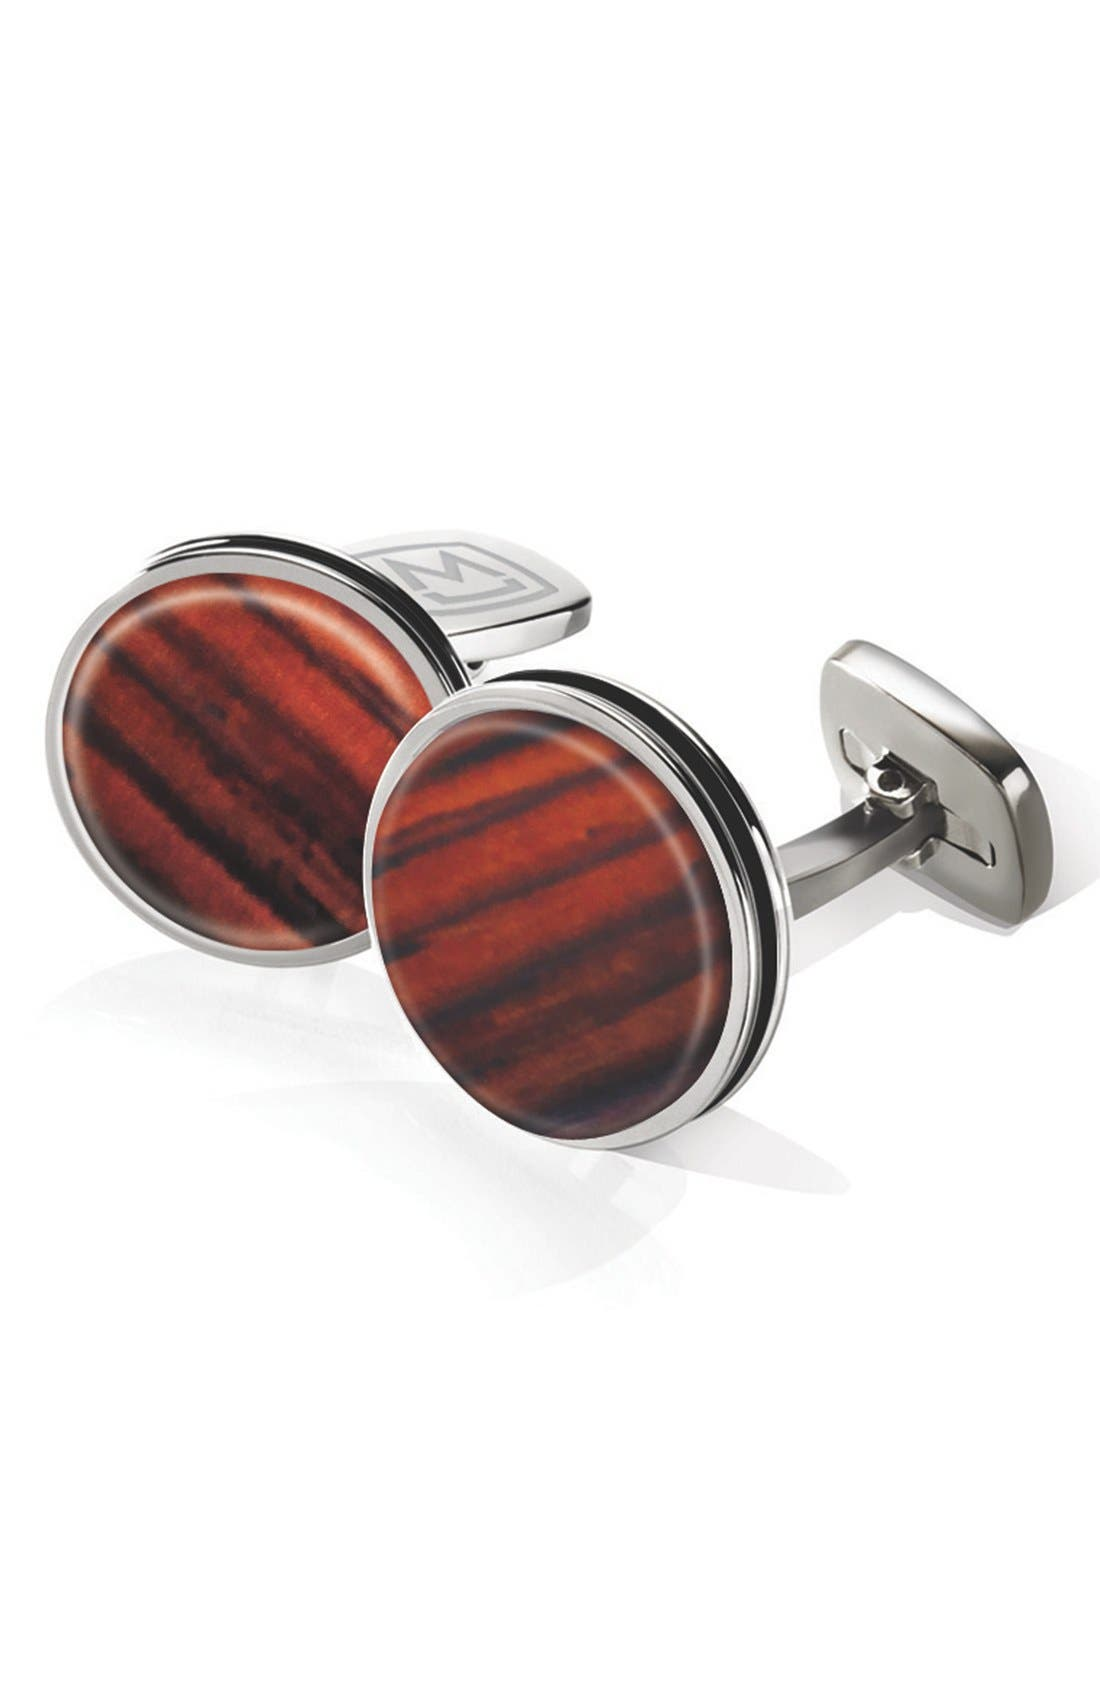 Cocobolo Cuff Links,                         Main,                         color, 040